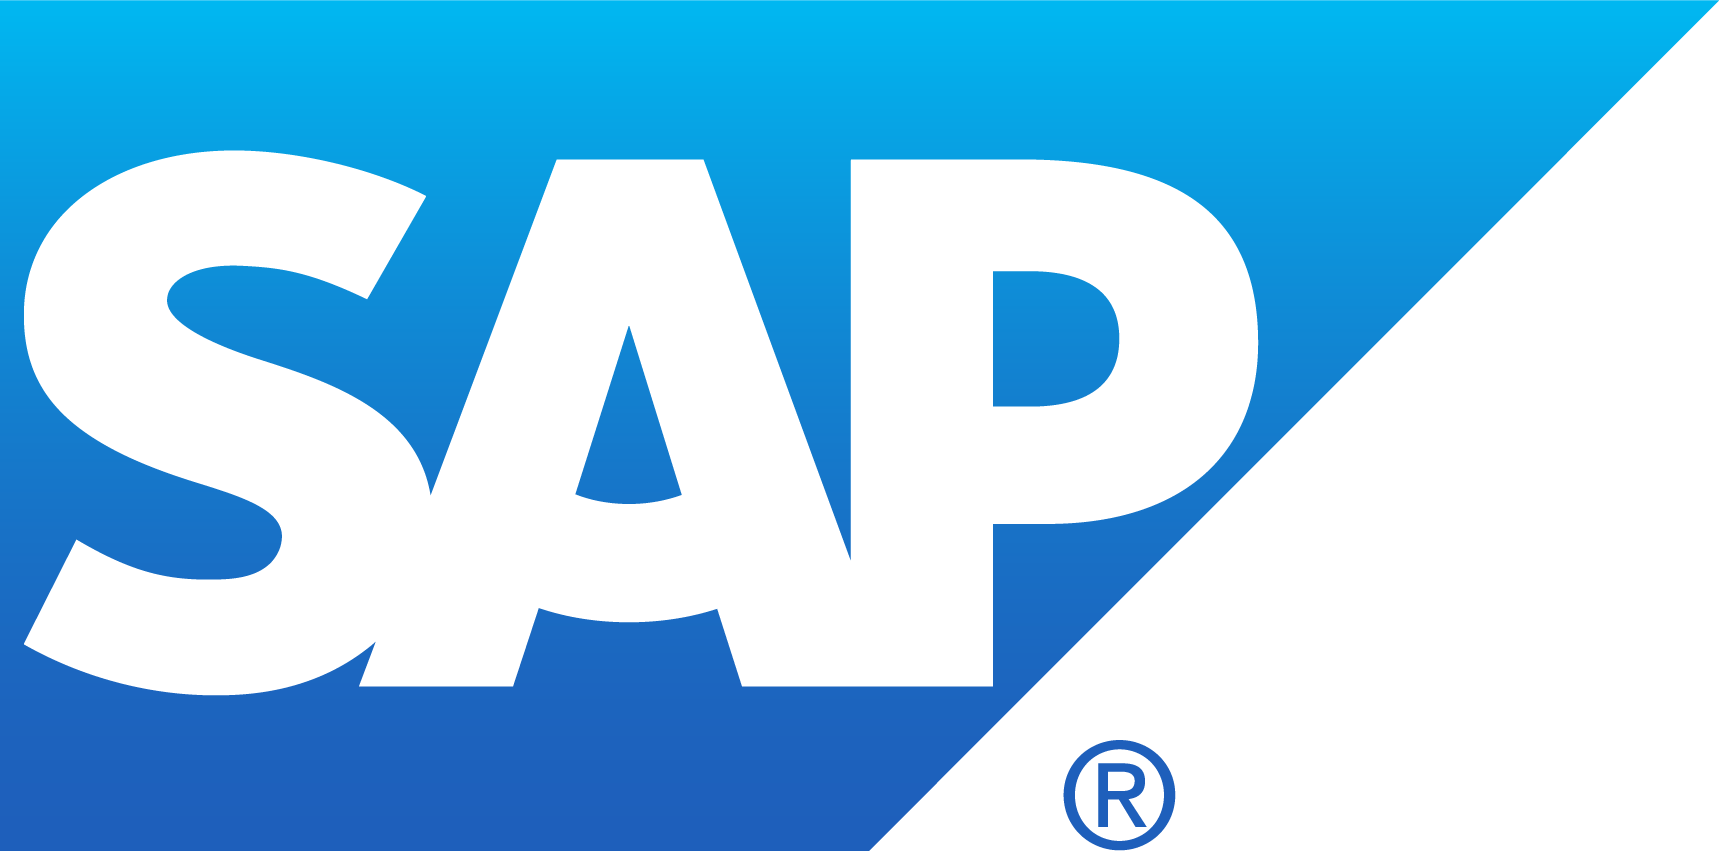 SAP Blue Logo Vector Wallpaper